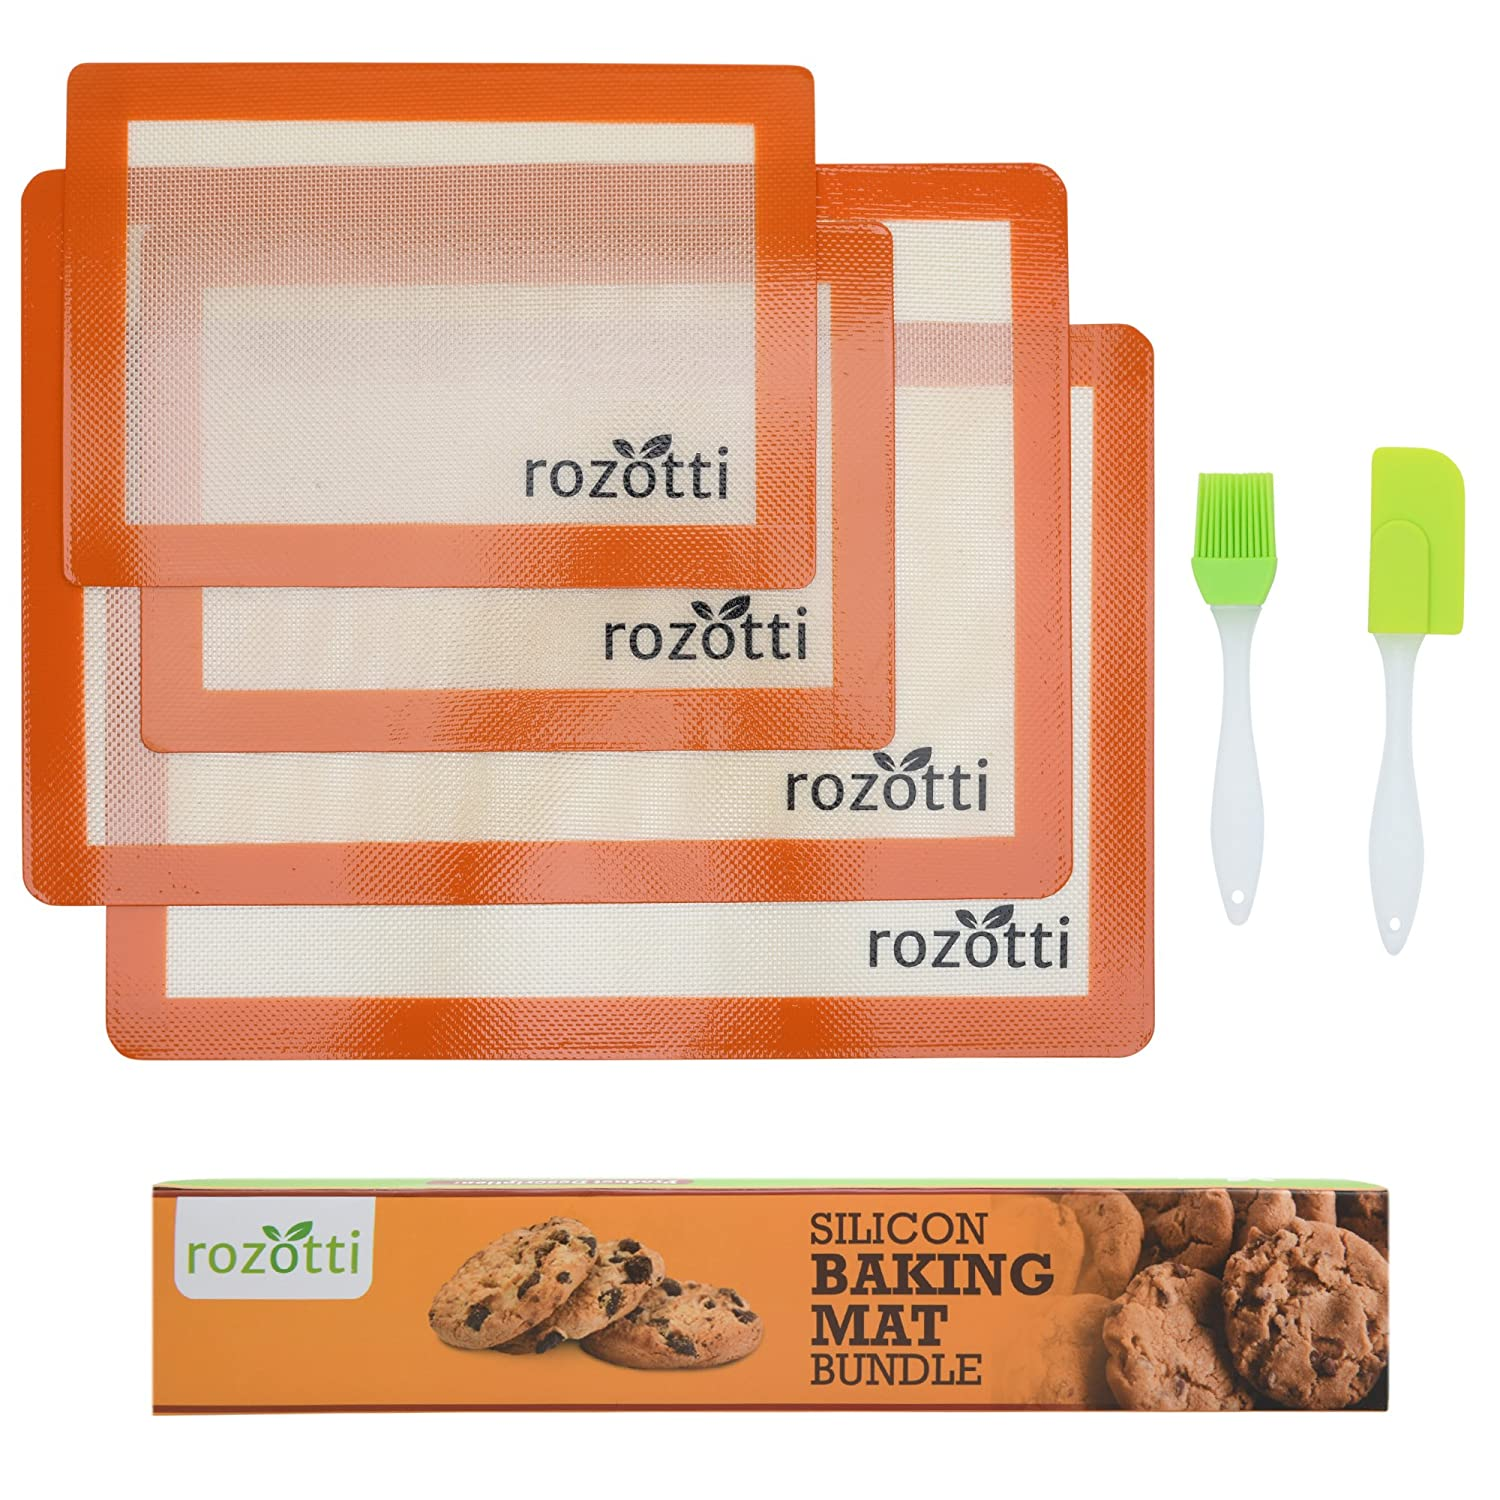 Rozotti Silicone Baking Mat Bundle (6-Piece Set) 2 Half Sheets Silicone Baking Mat and 2 Quarter Sheets Silicone Baking Mat, Silicone Baking Brush, Silicone Baking Spatula | Non-Stick, Heat-Resistant